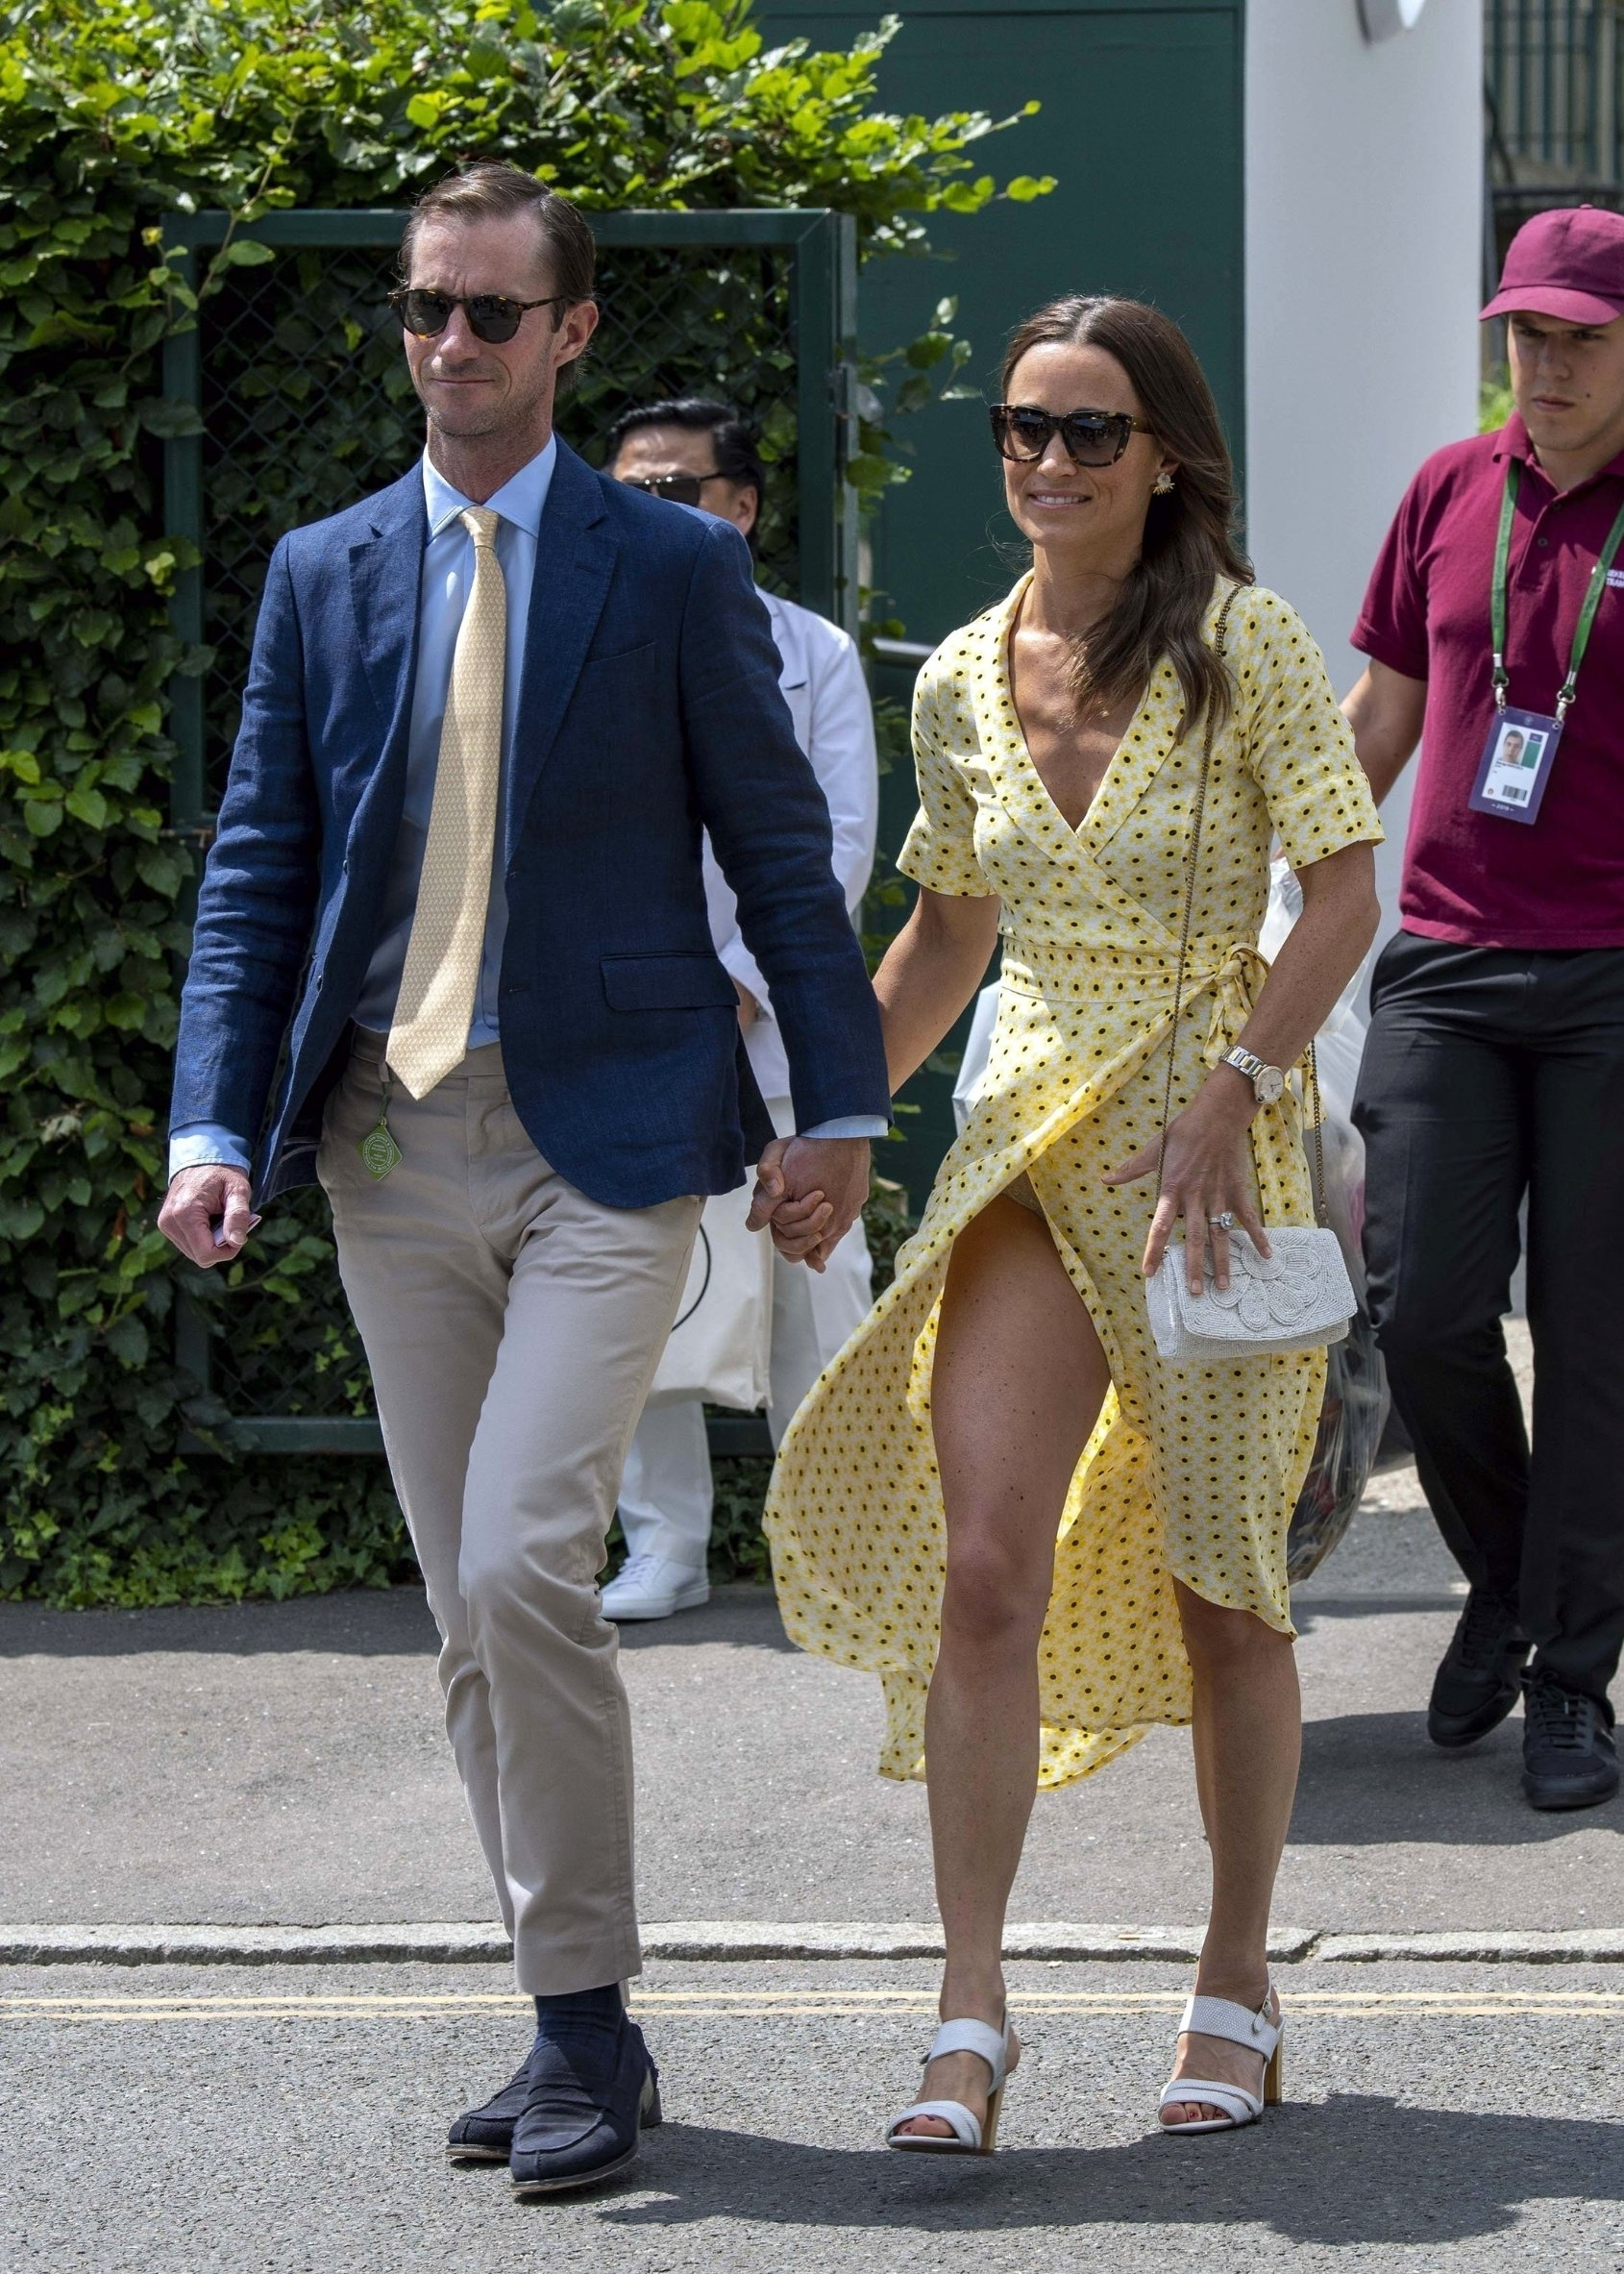 London, UNITED KINGDOM  -  Pippa Matthews (Middleton) and James Matthews arrive at the 2019 Wimbledon Lawn Tennis Championships.  *UK Clients - Pictures Containing Children Please Pixelate Face Prior To Publication*, Image: 457927991, License: Rights-managed, Restrictions: , Model Release: no, Credit line: Profimedia, Backgrid UK